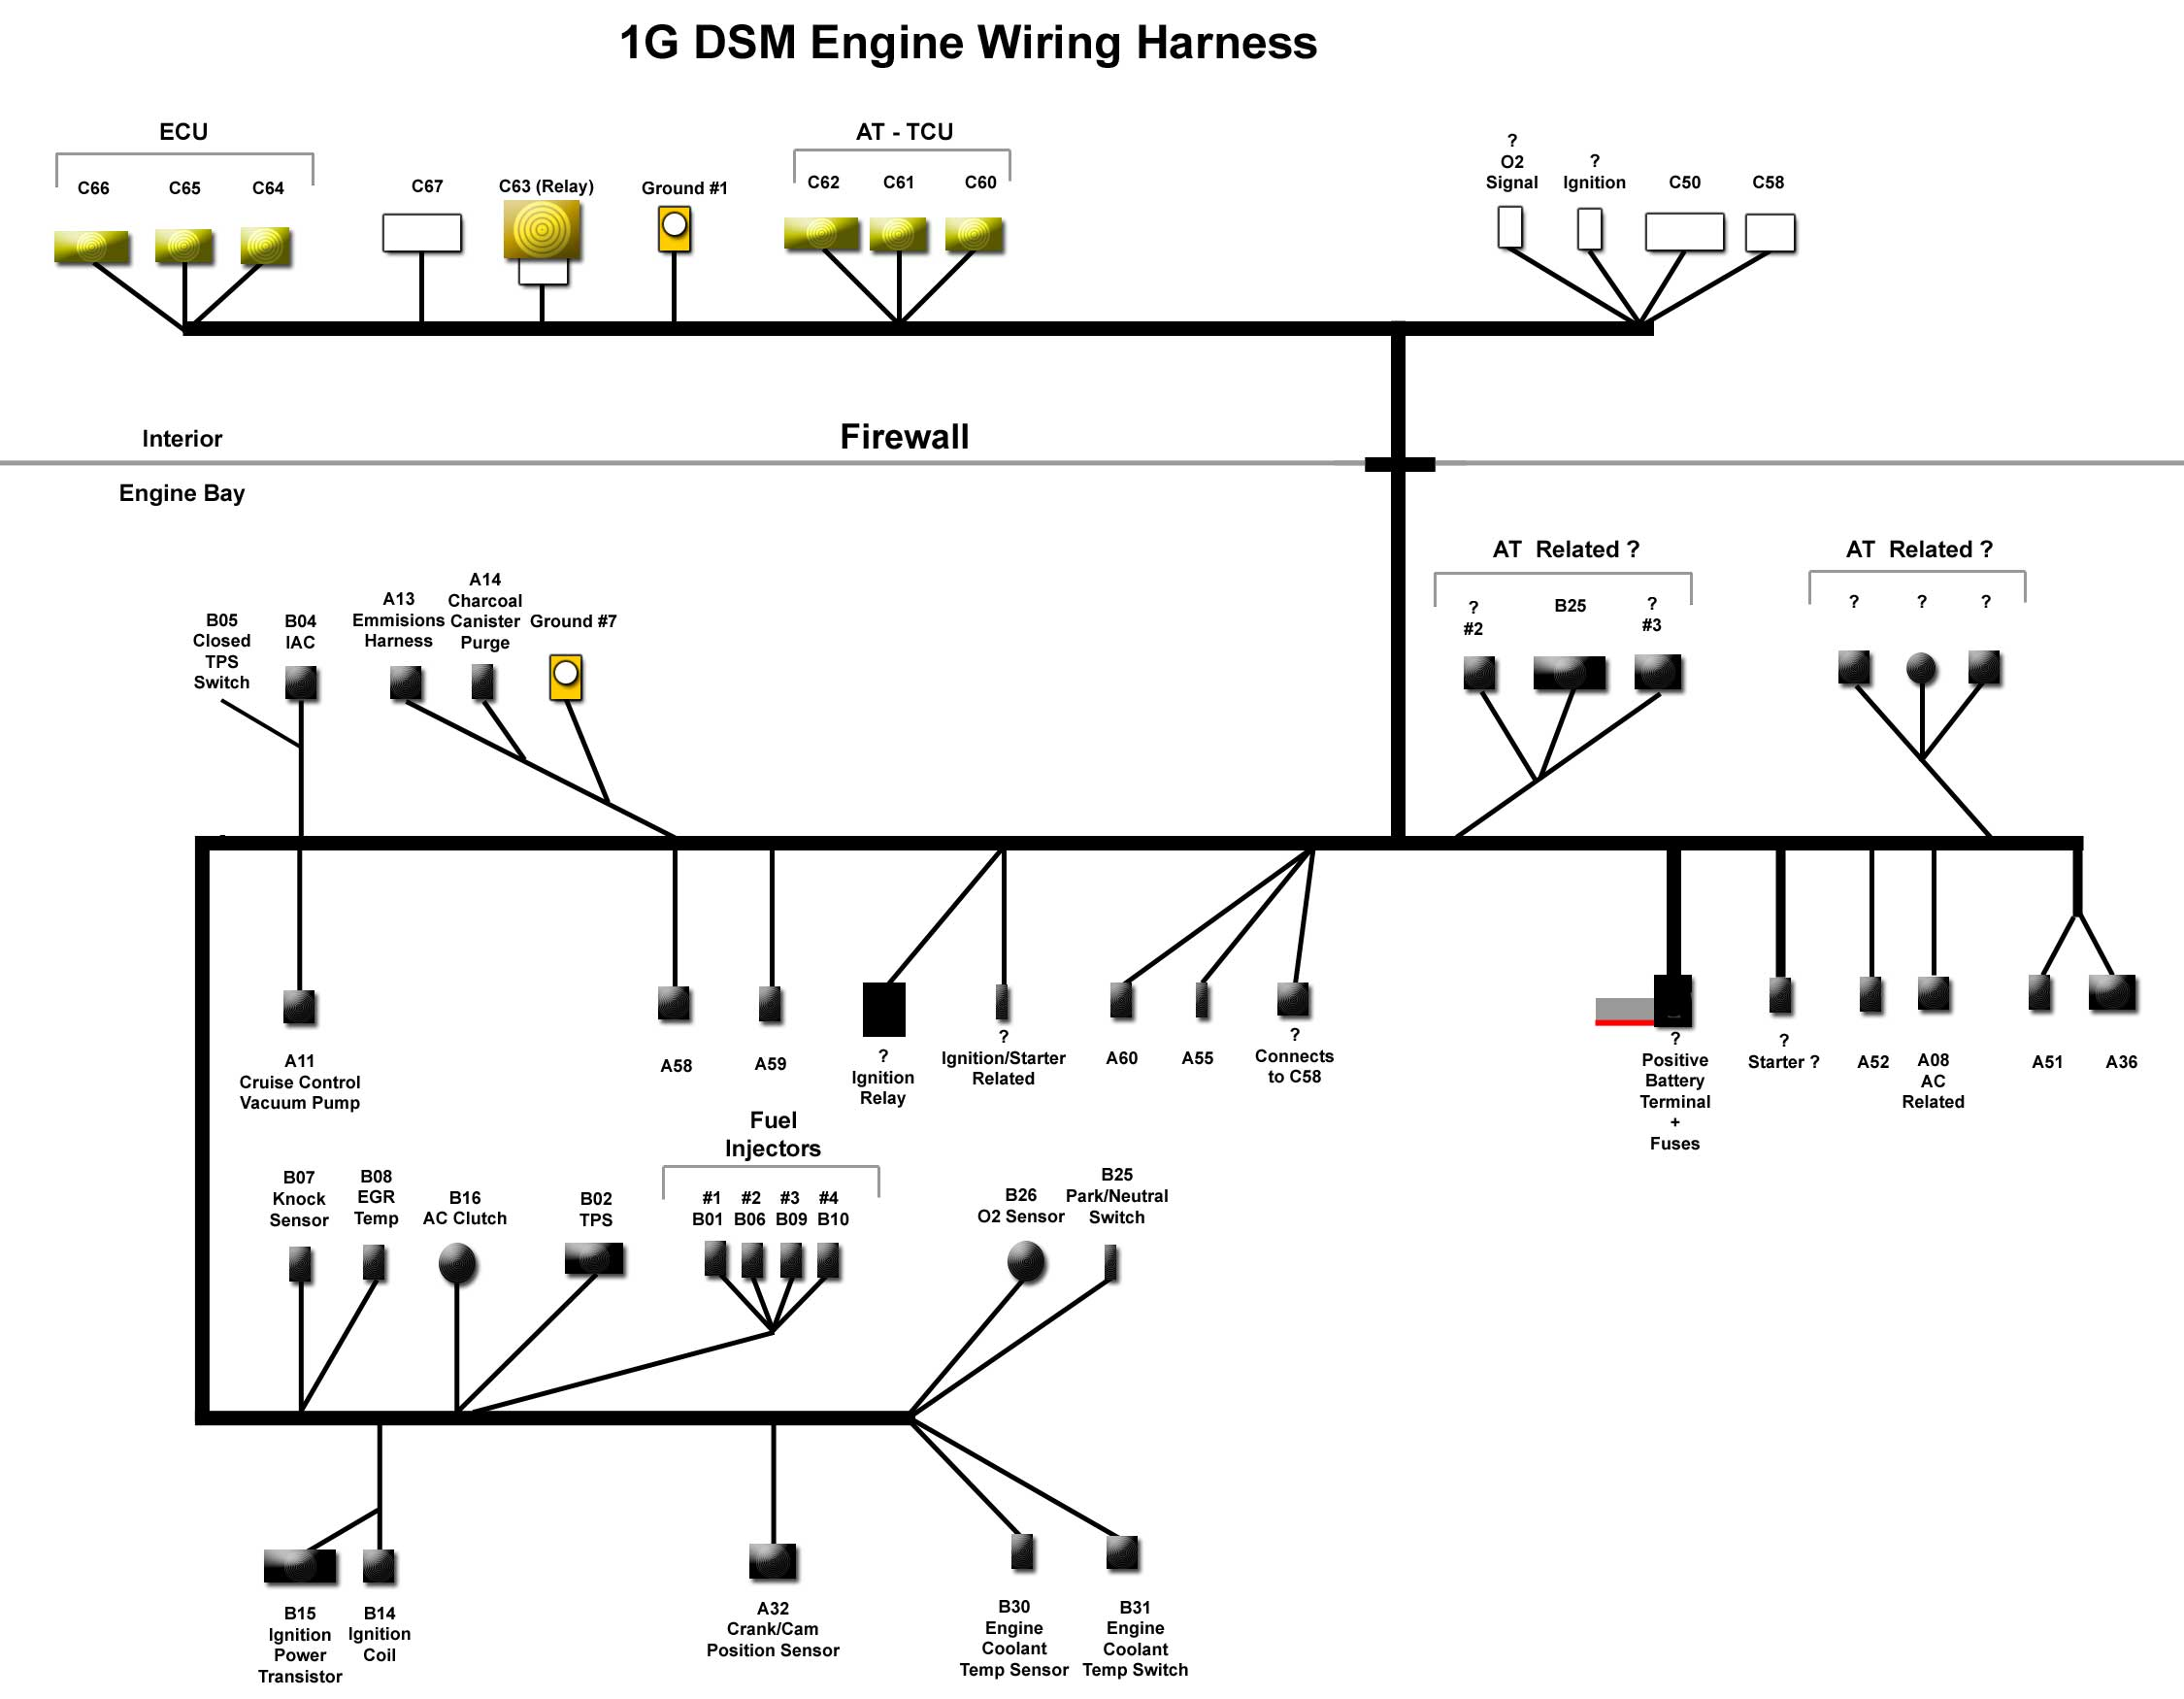 1G DSM EngineHarness wiring loom diagram 1 2wire loom \u2022 wiring diagrams j squared co engine wiring harness diagram at reclaimingppi.co